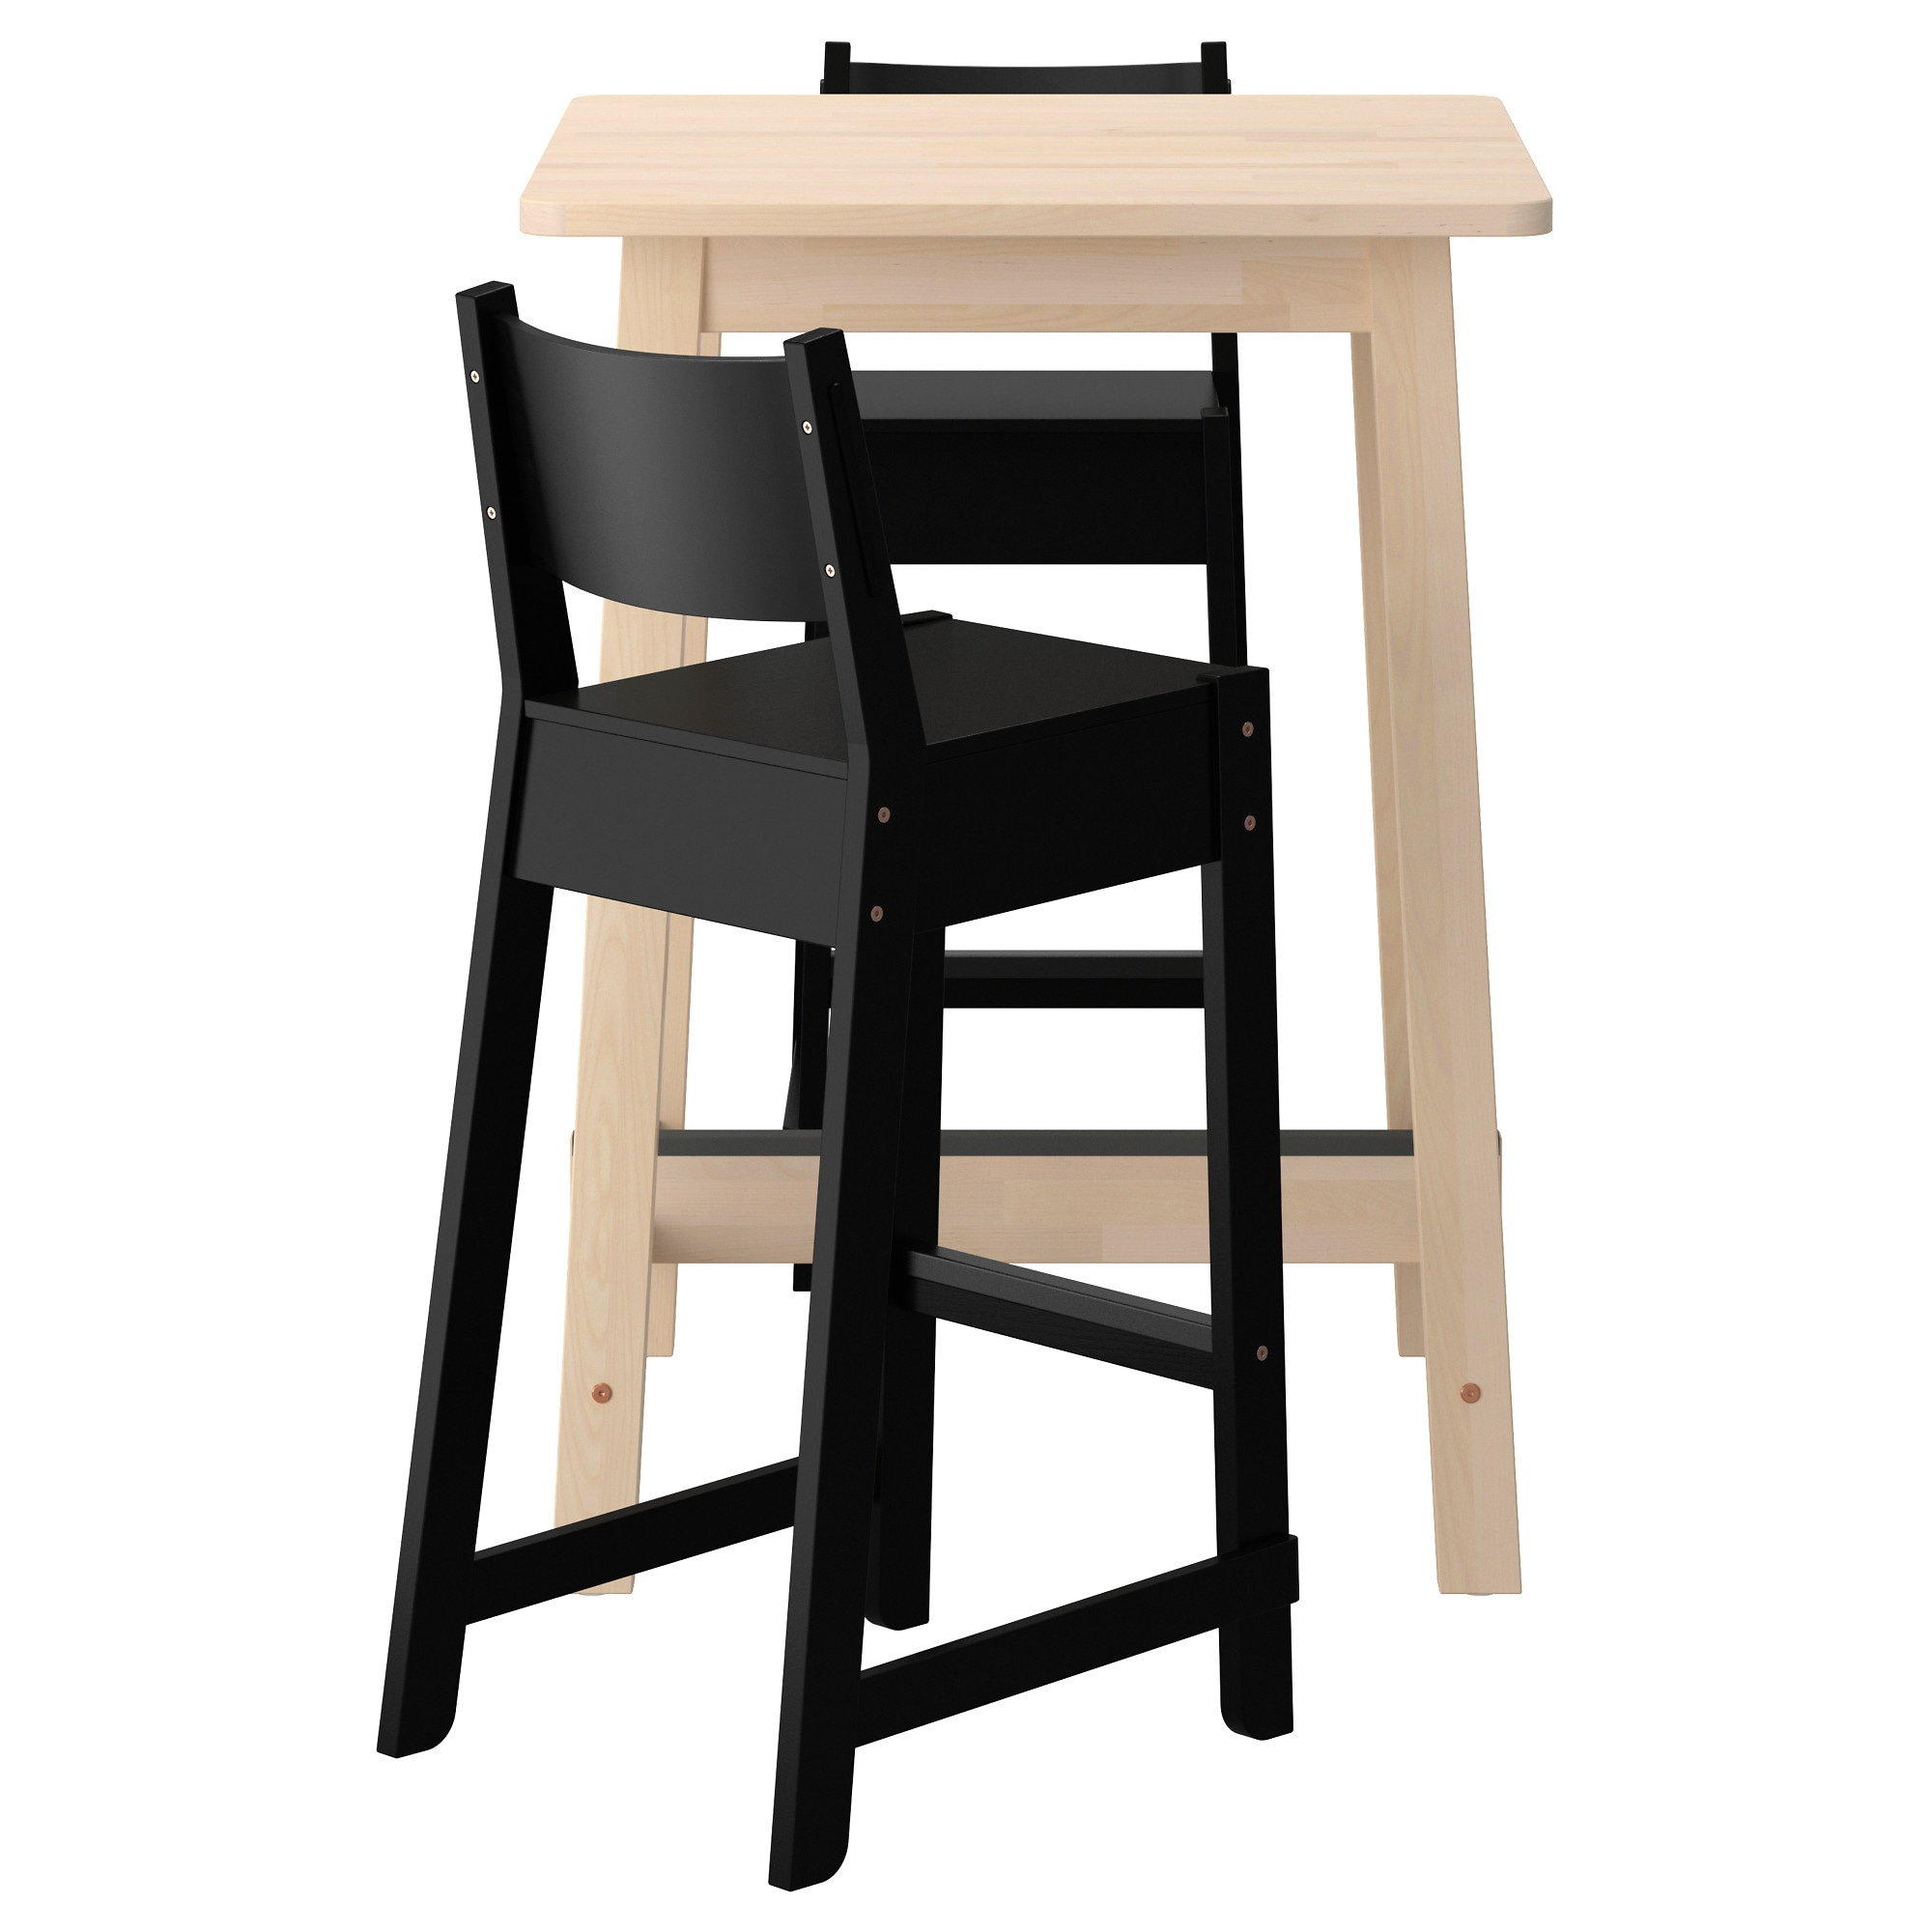 NorrÅker Bar Table And 2 Stools White Birch Black Length